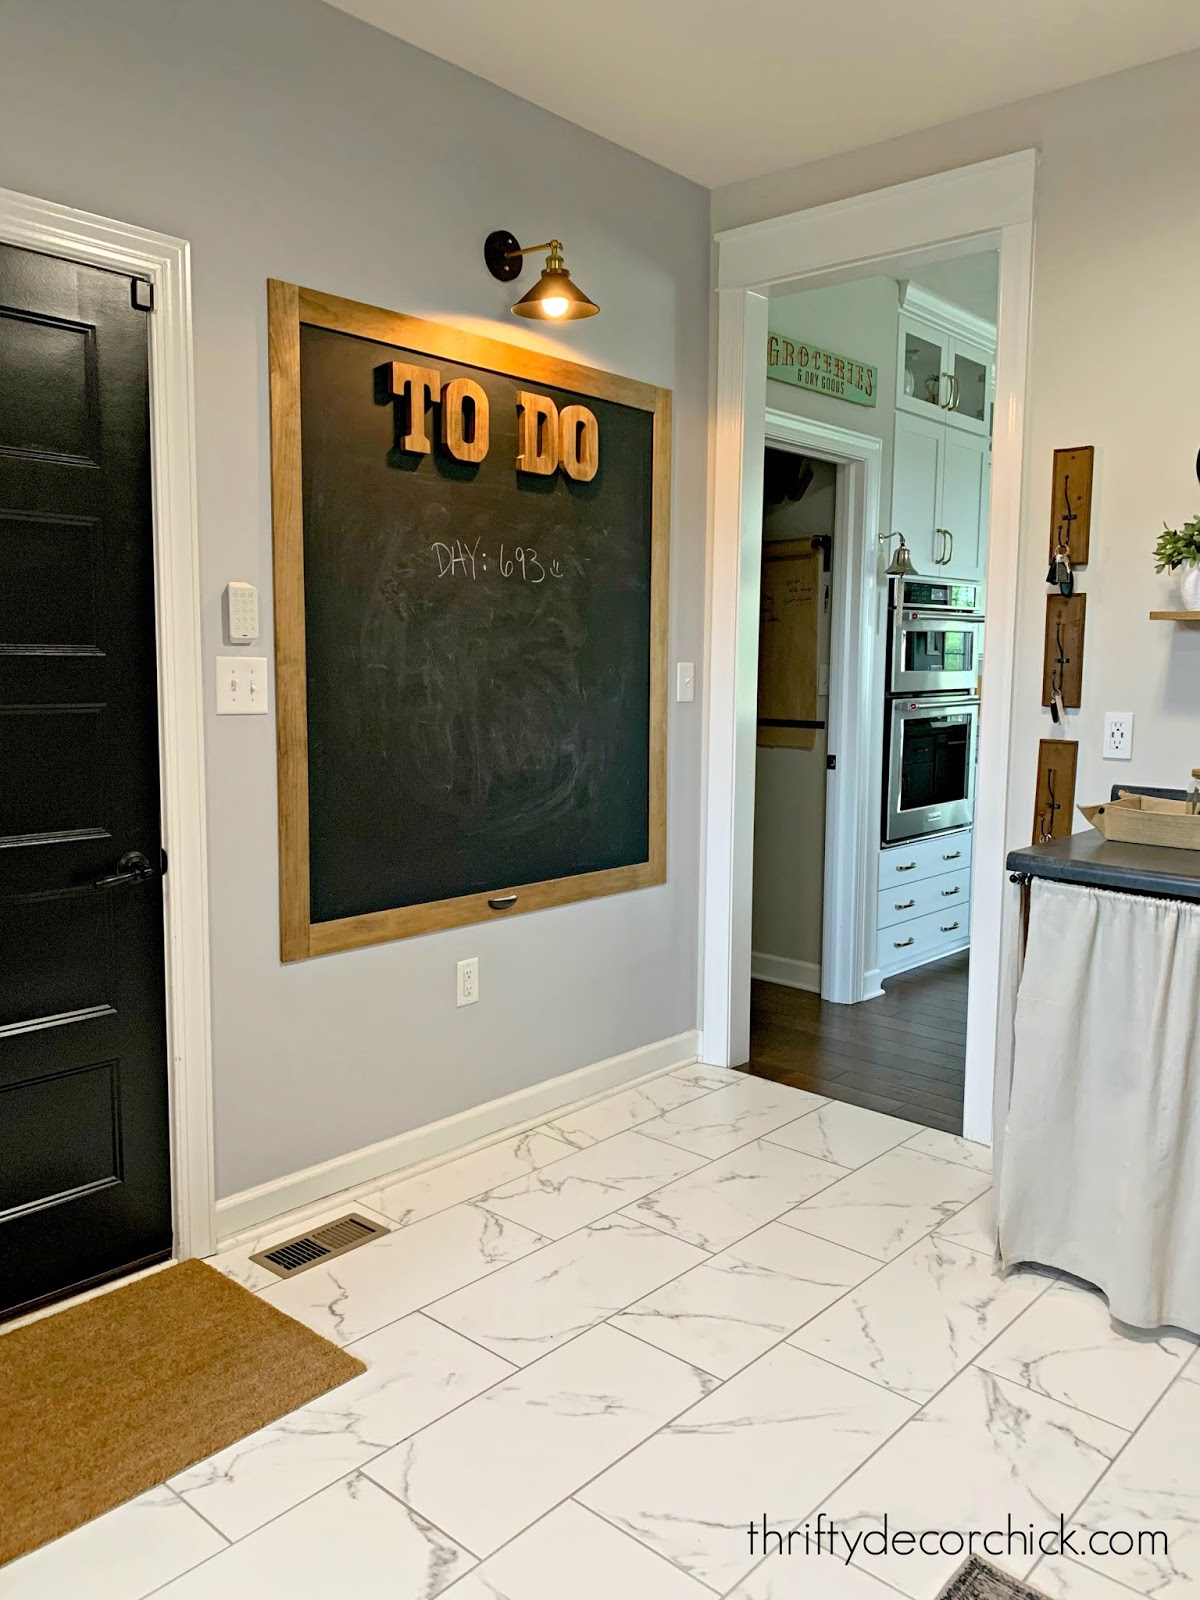 How to paint a large chalkboard on any wall